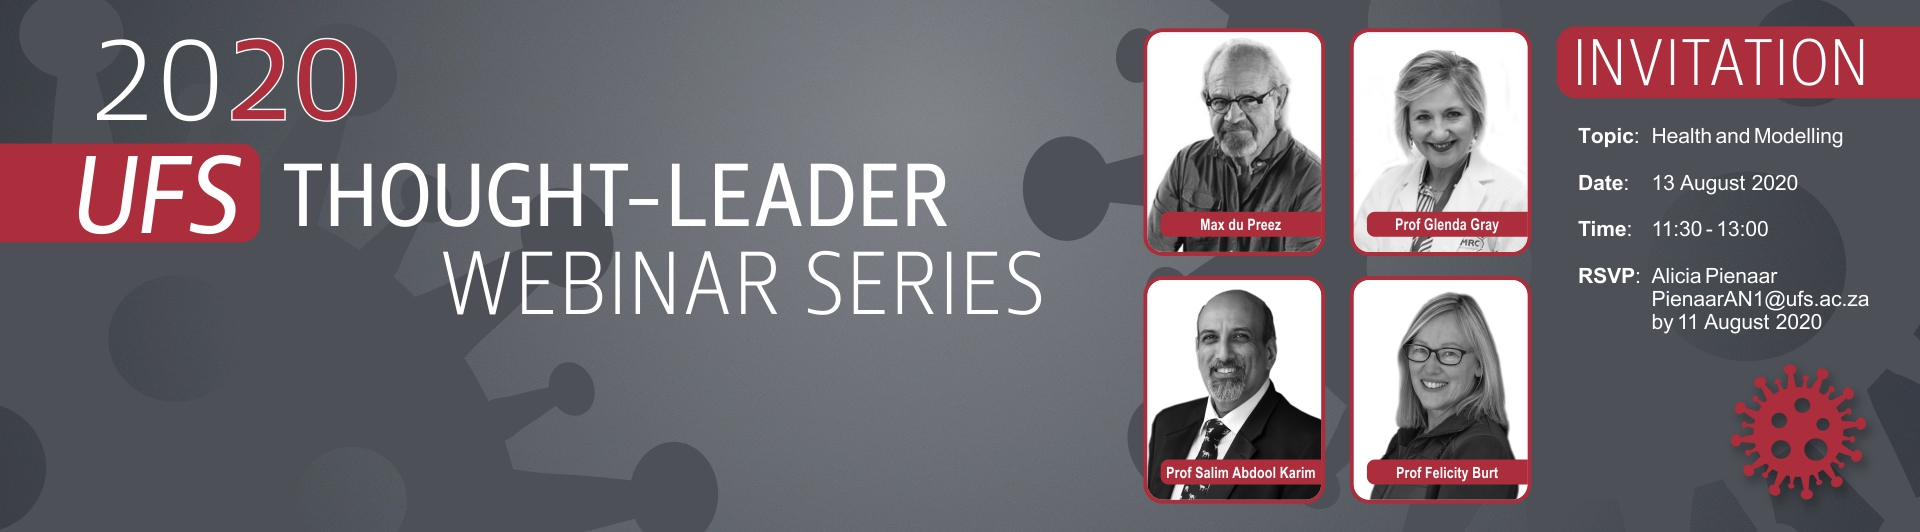 UFS thought-leader webinar series